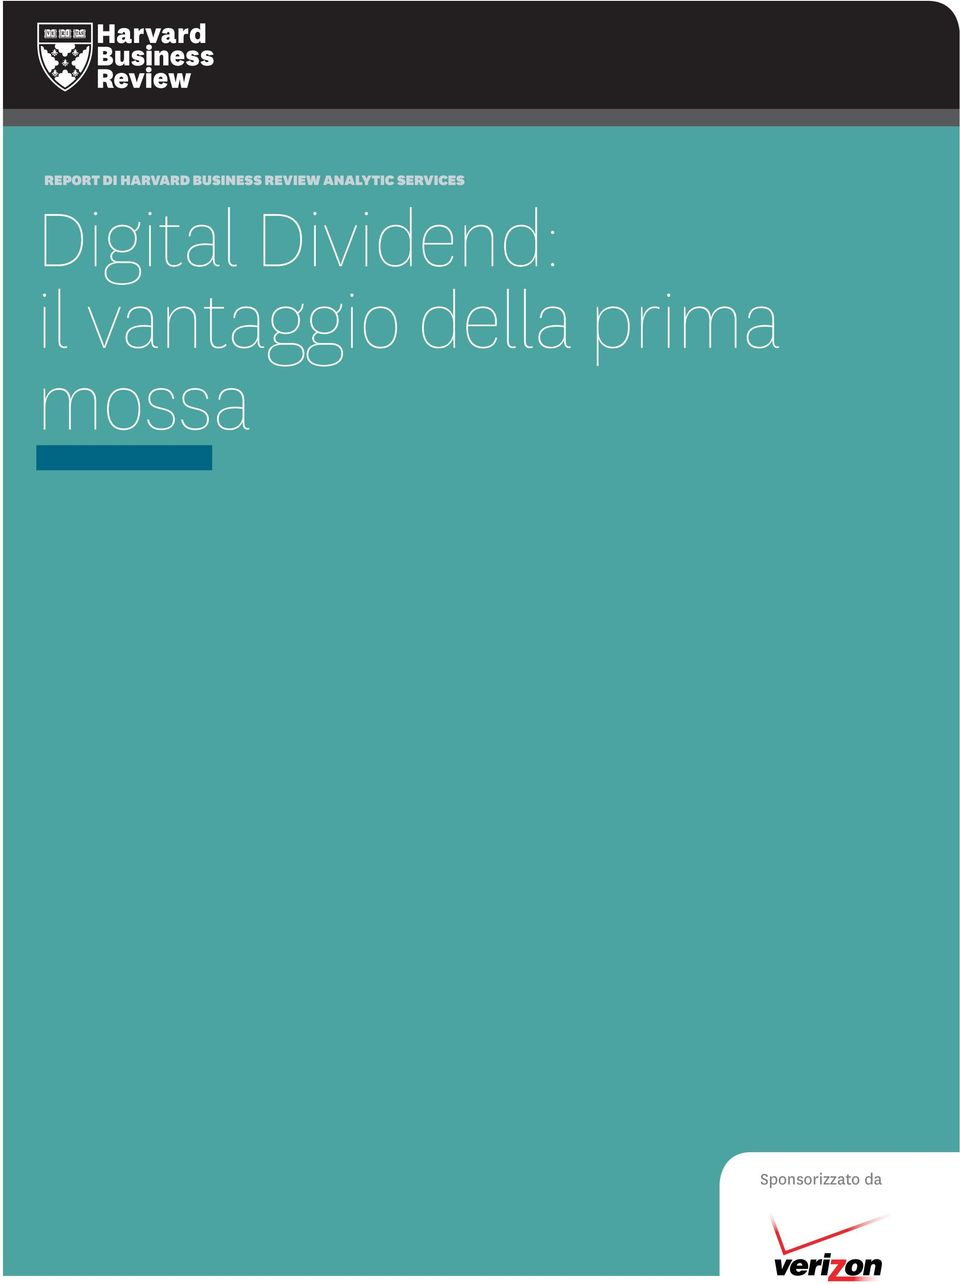 Digital Dividend: il